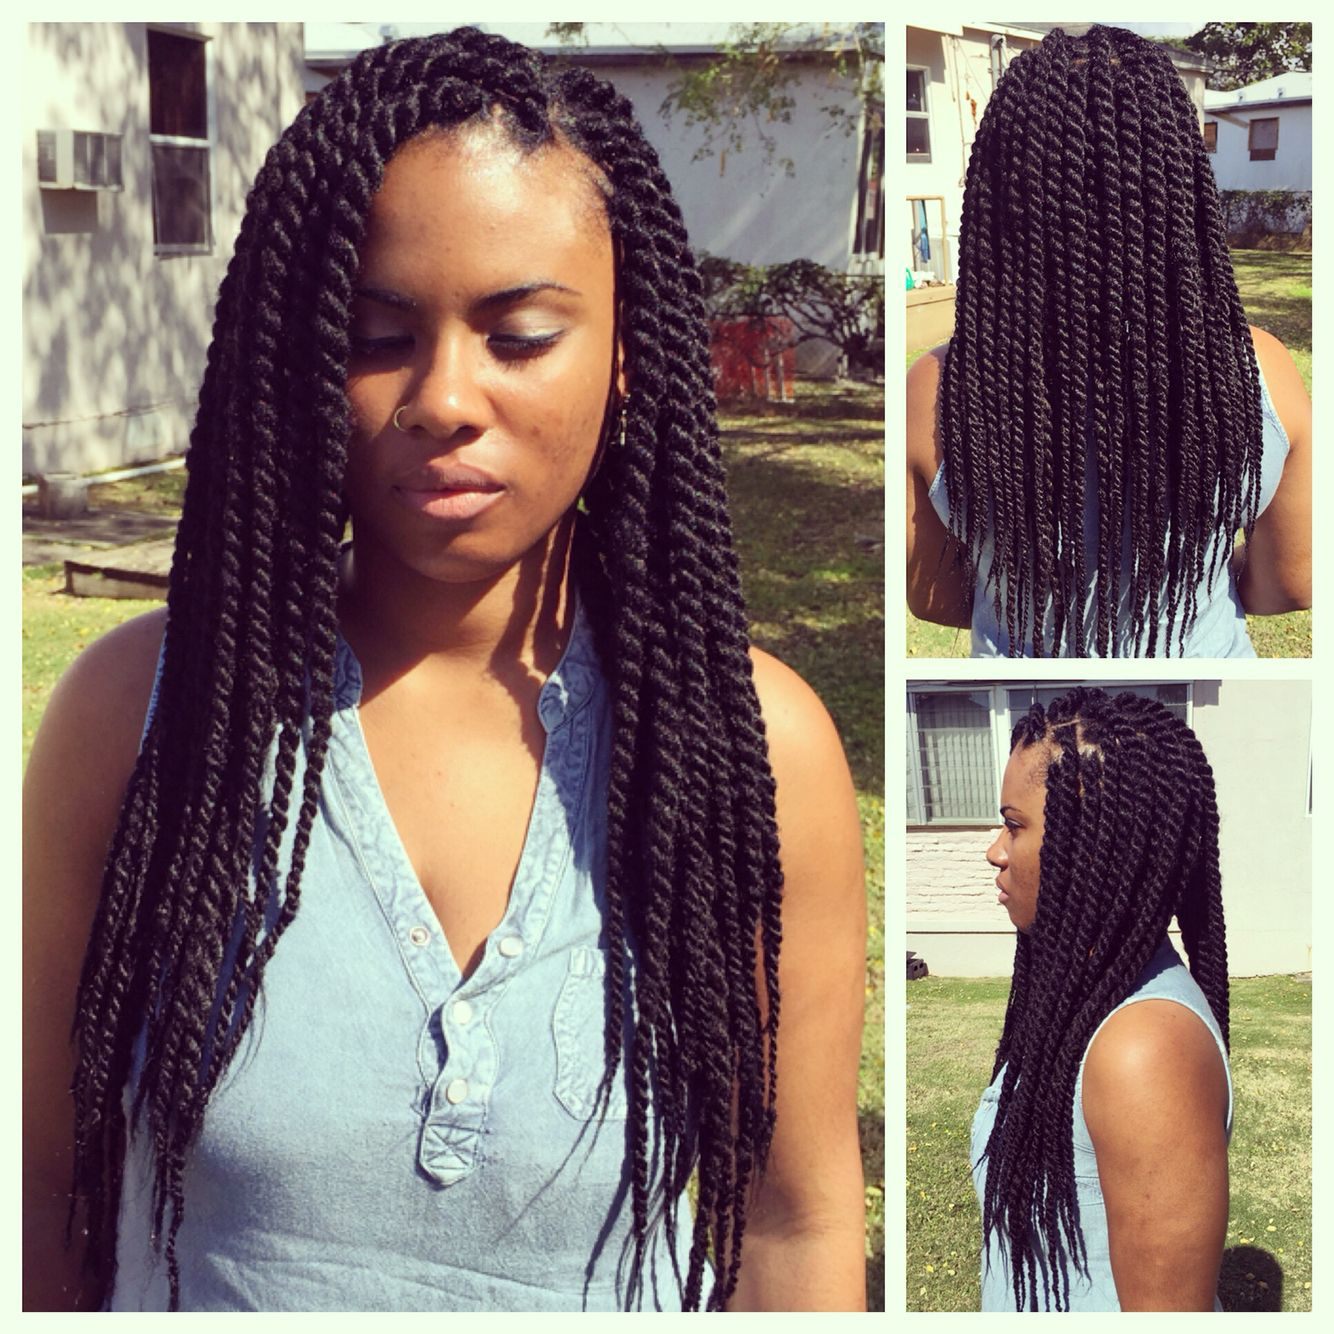 Havana twists havana twists pinterest havana twists twists havana mambo twist crochet braid hair synthetic kanekalon kinky marley twists braiding hair extension usd buy more than 3 pieces you can get free gifts pmusecretfo Images